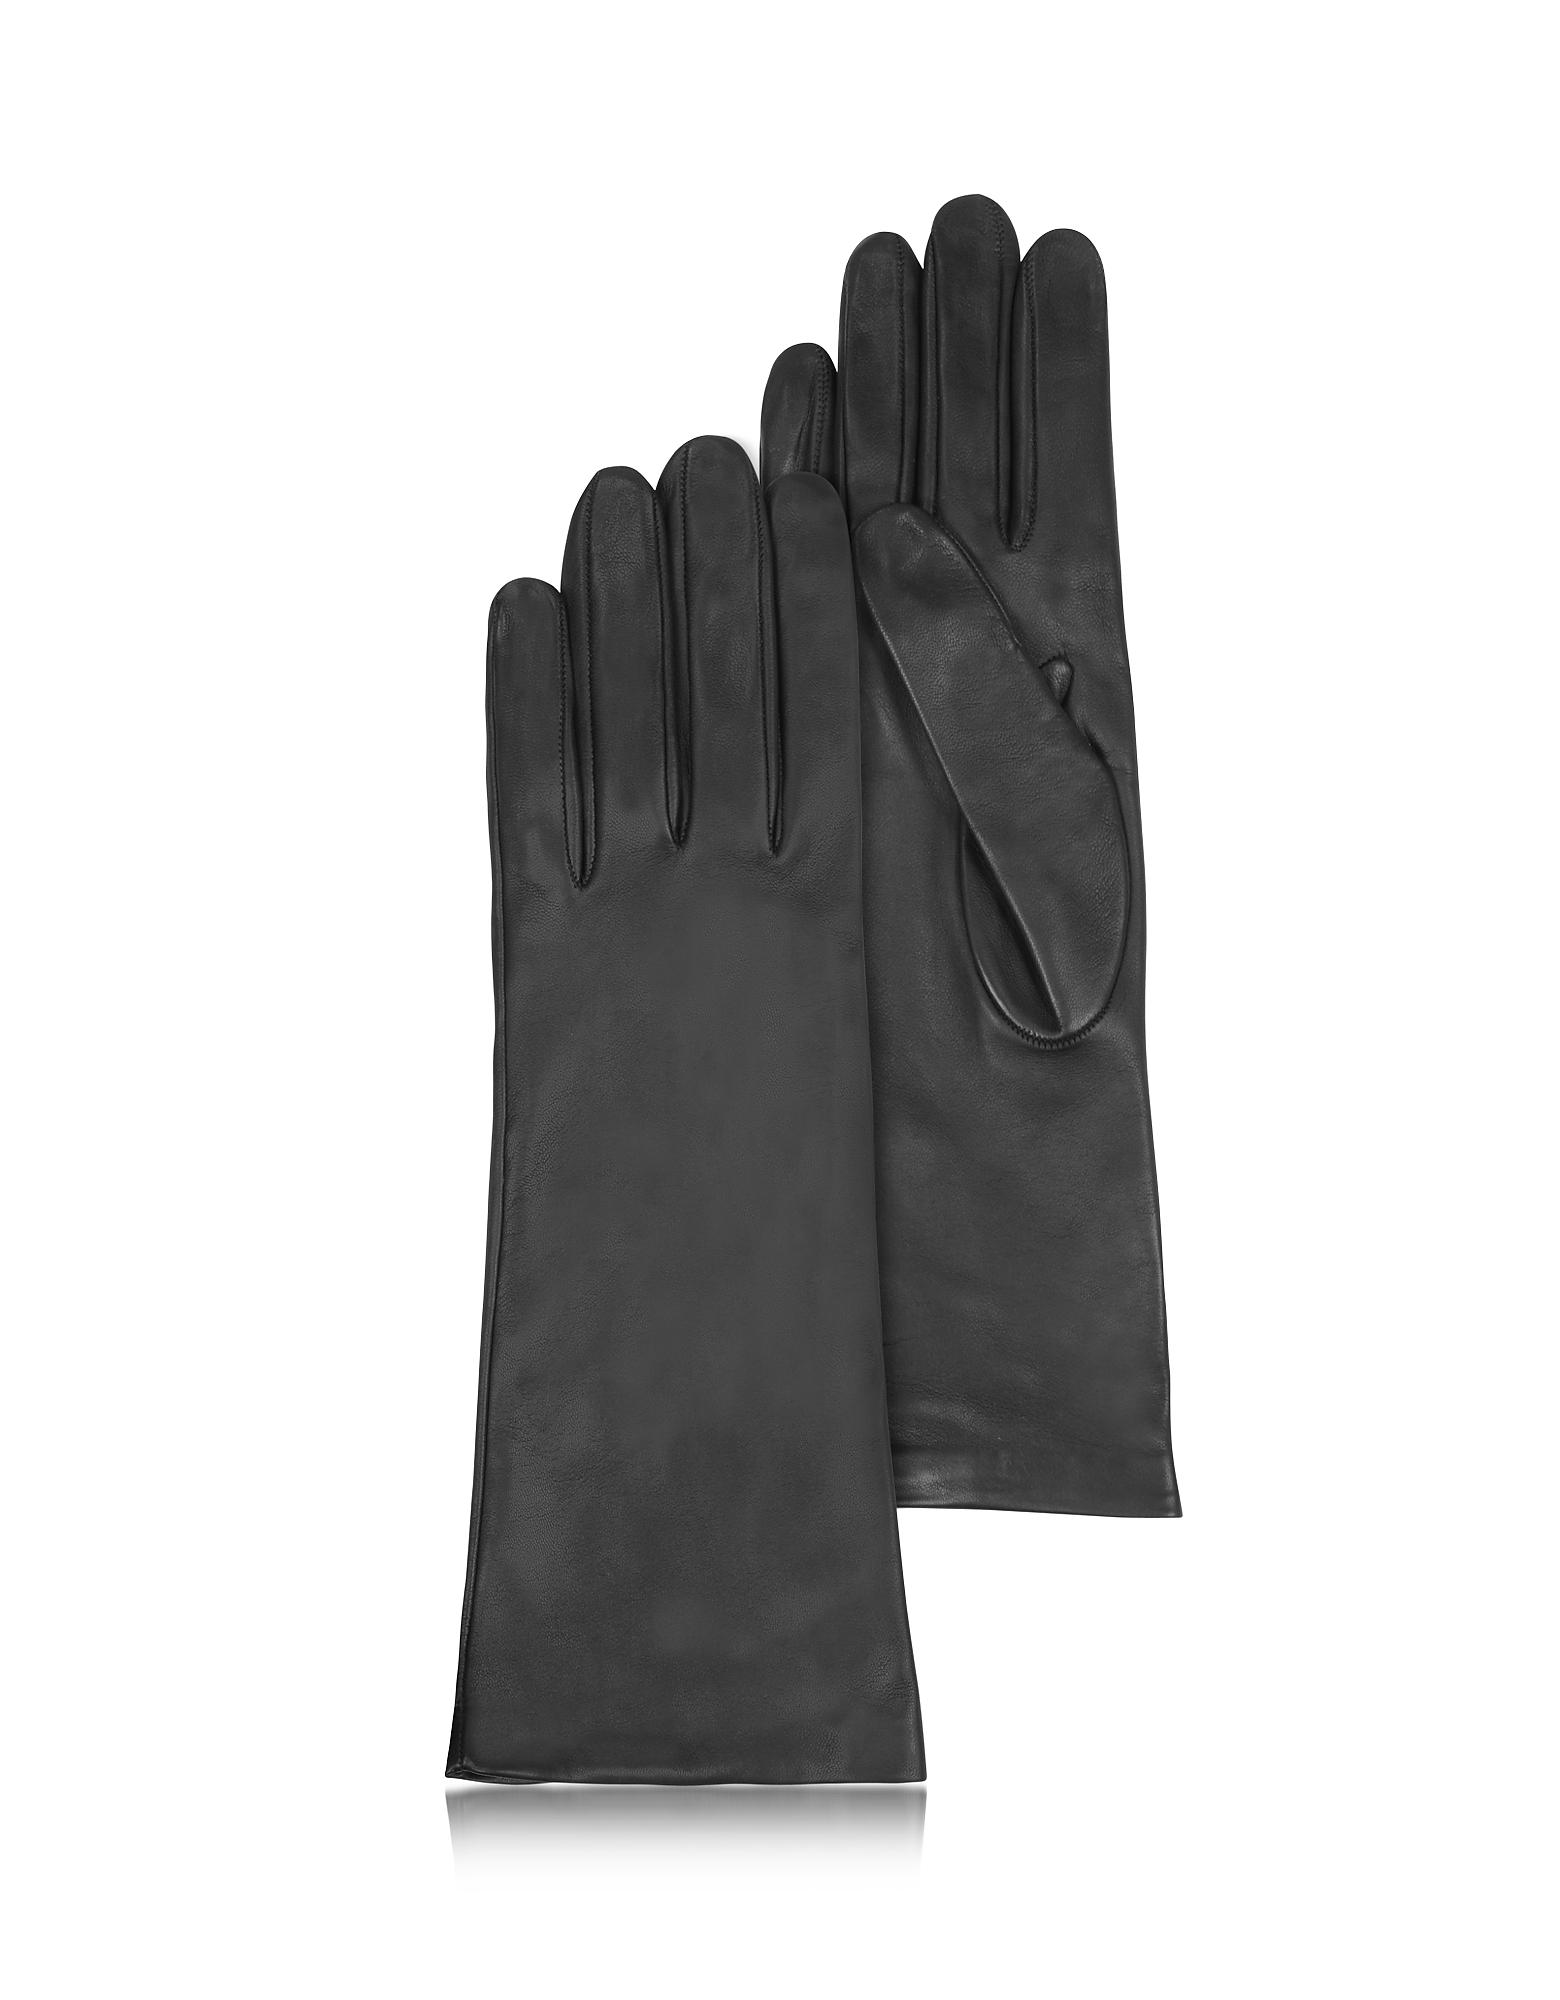 Forzieri Women's Gloves, Women's Silk Lined Black Italian Leather Long Gloves